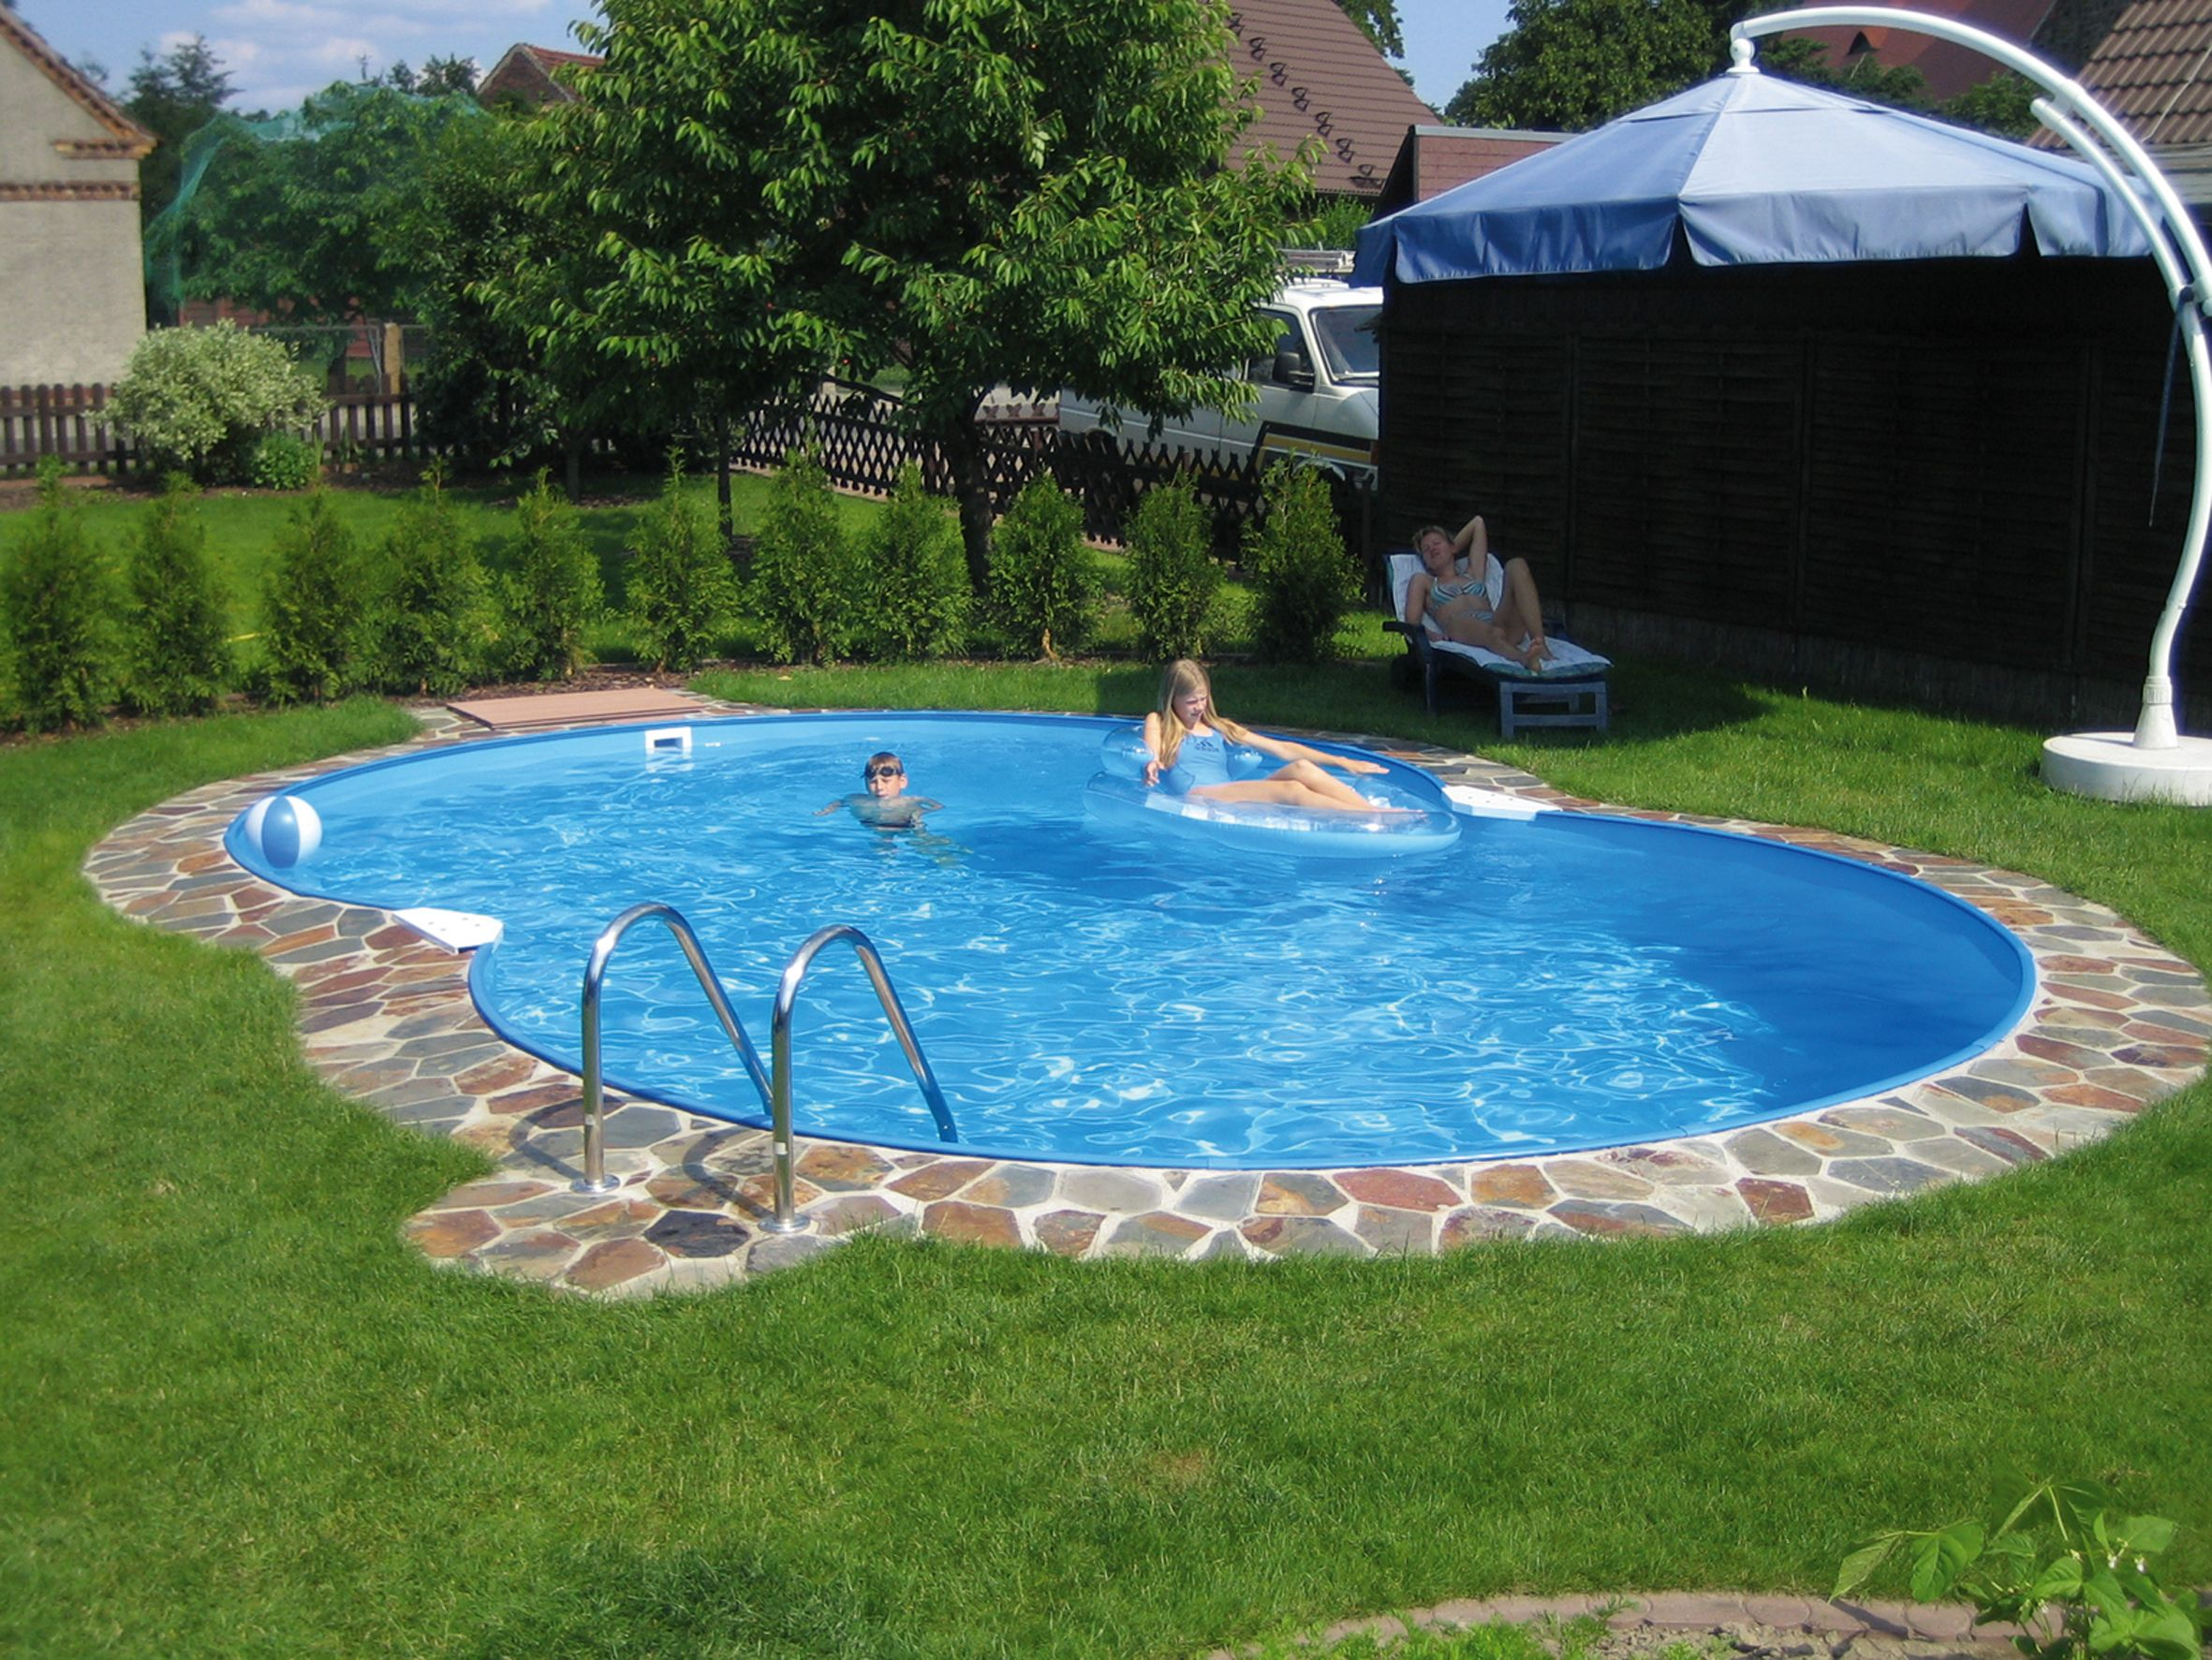 Pool Bauen 8 X 4 Backyard Landscaping Ideas Swimming Pool Design Pool Landscaping